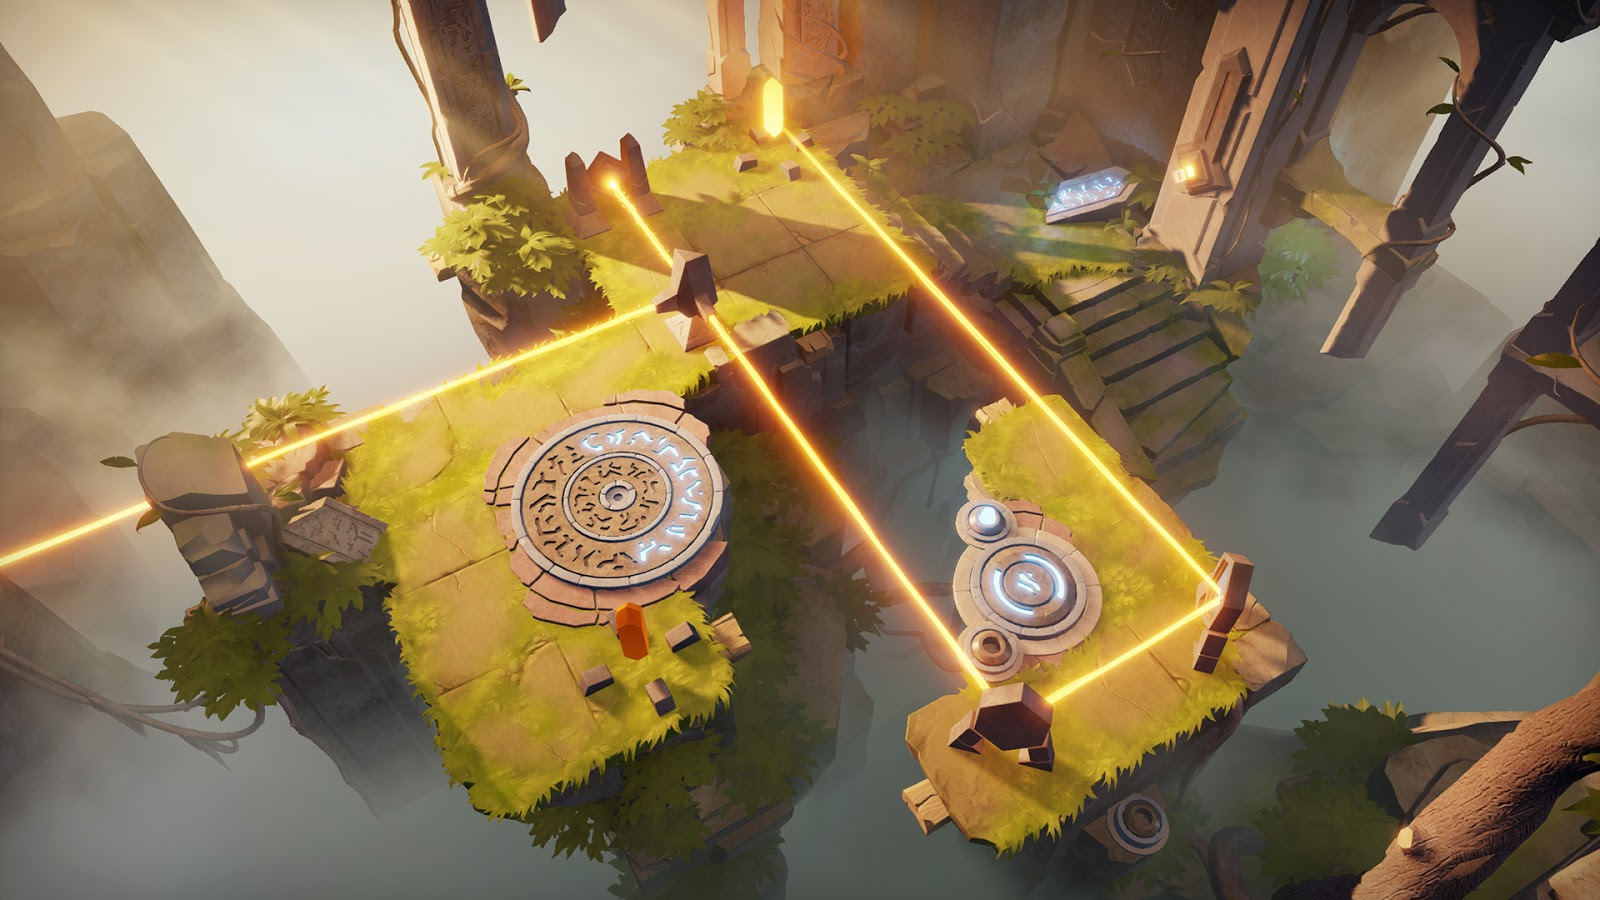 Archaica The Path of Light, Archaica, IndieGame, Adventure, Puzzle, Review, головоломка, паззл, инди-игра, обзор, рецензия